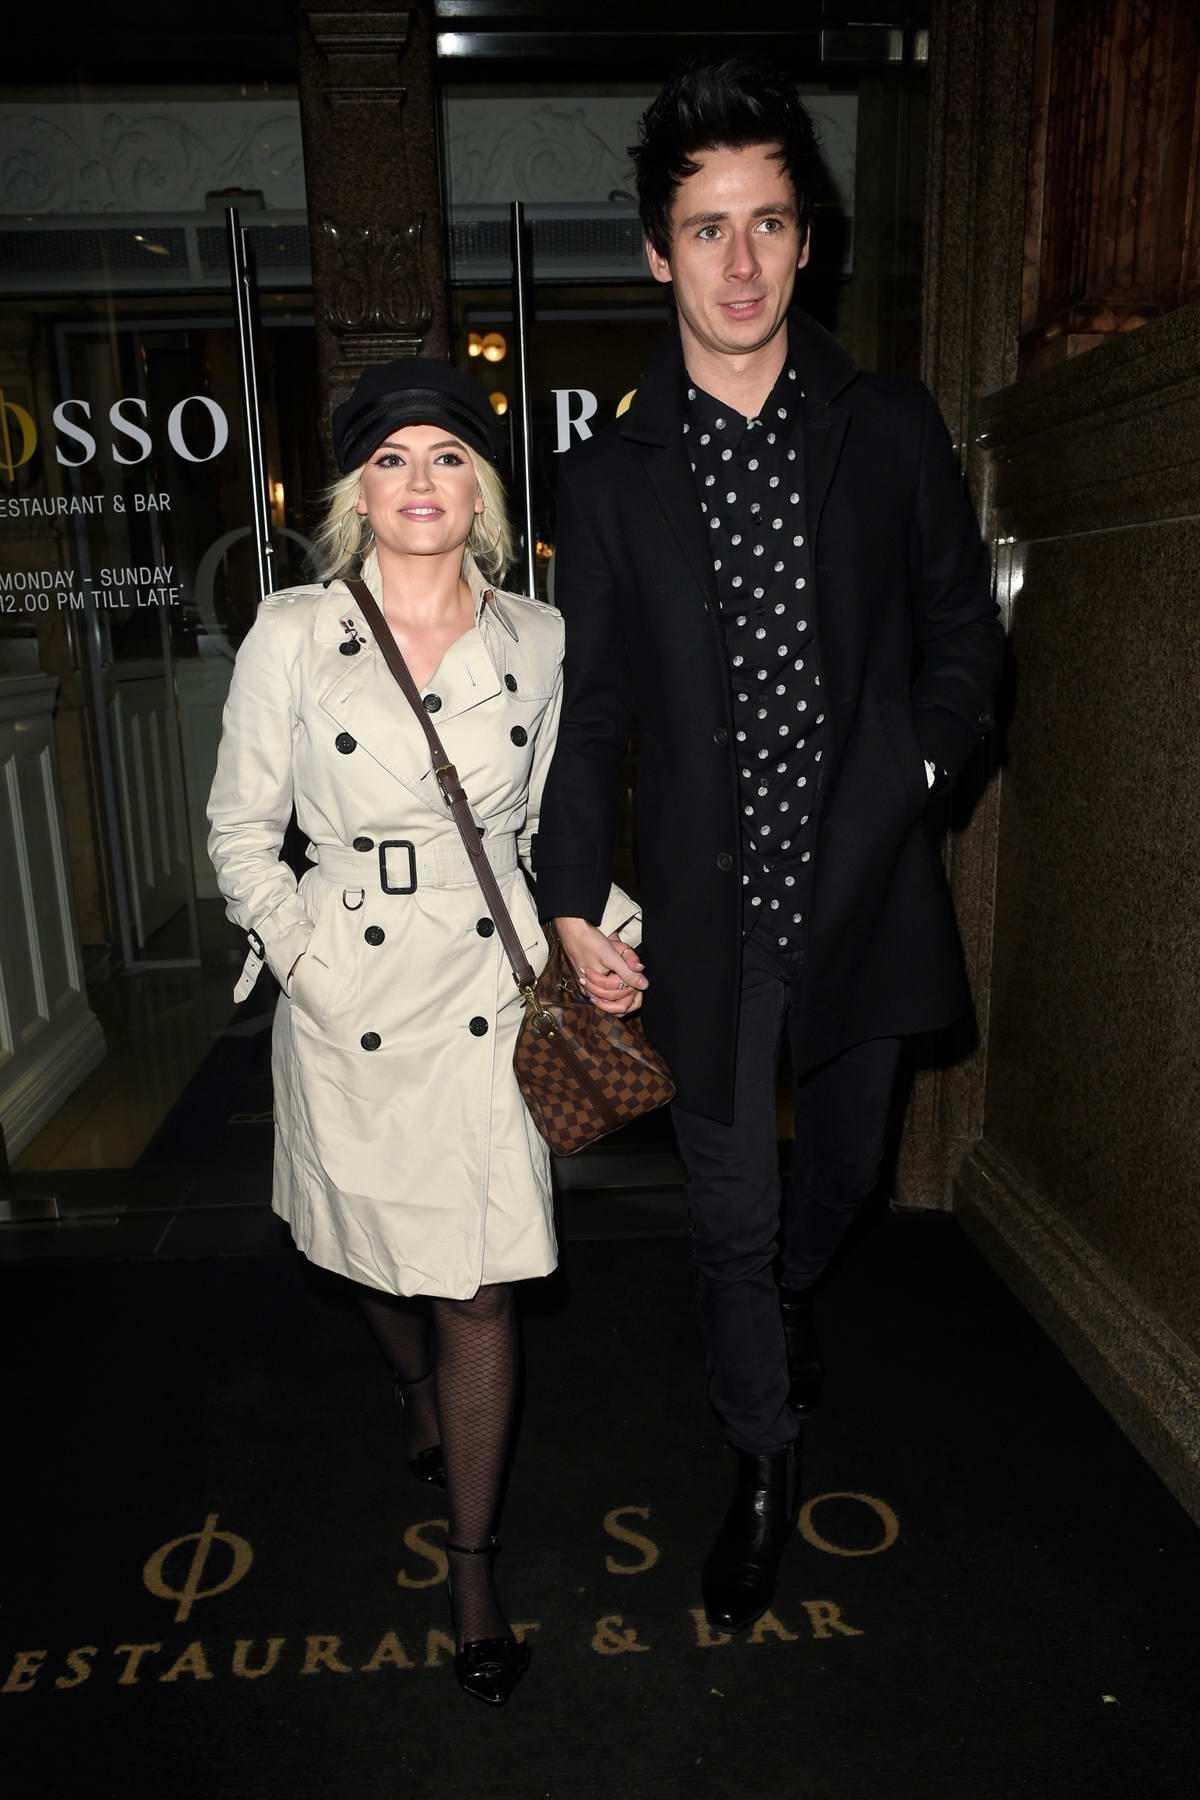 Lucy Fallon and boyfriend Tom Leech enjoys a date night at Rosso in Manchester, UK